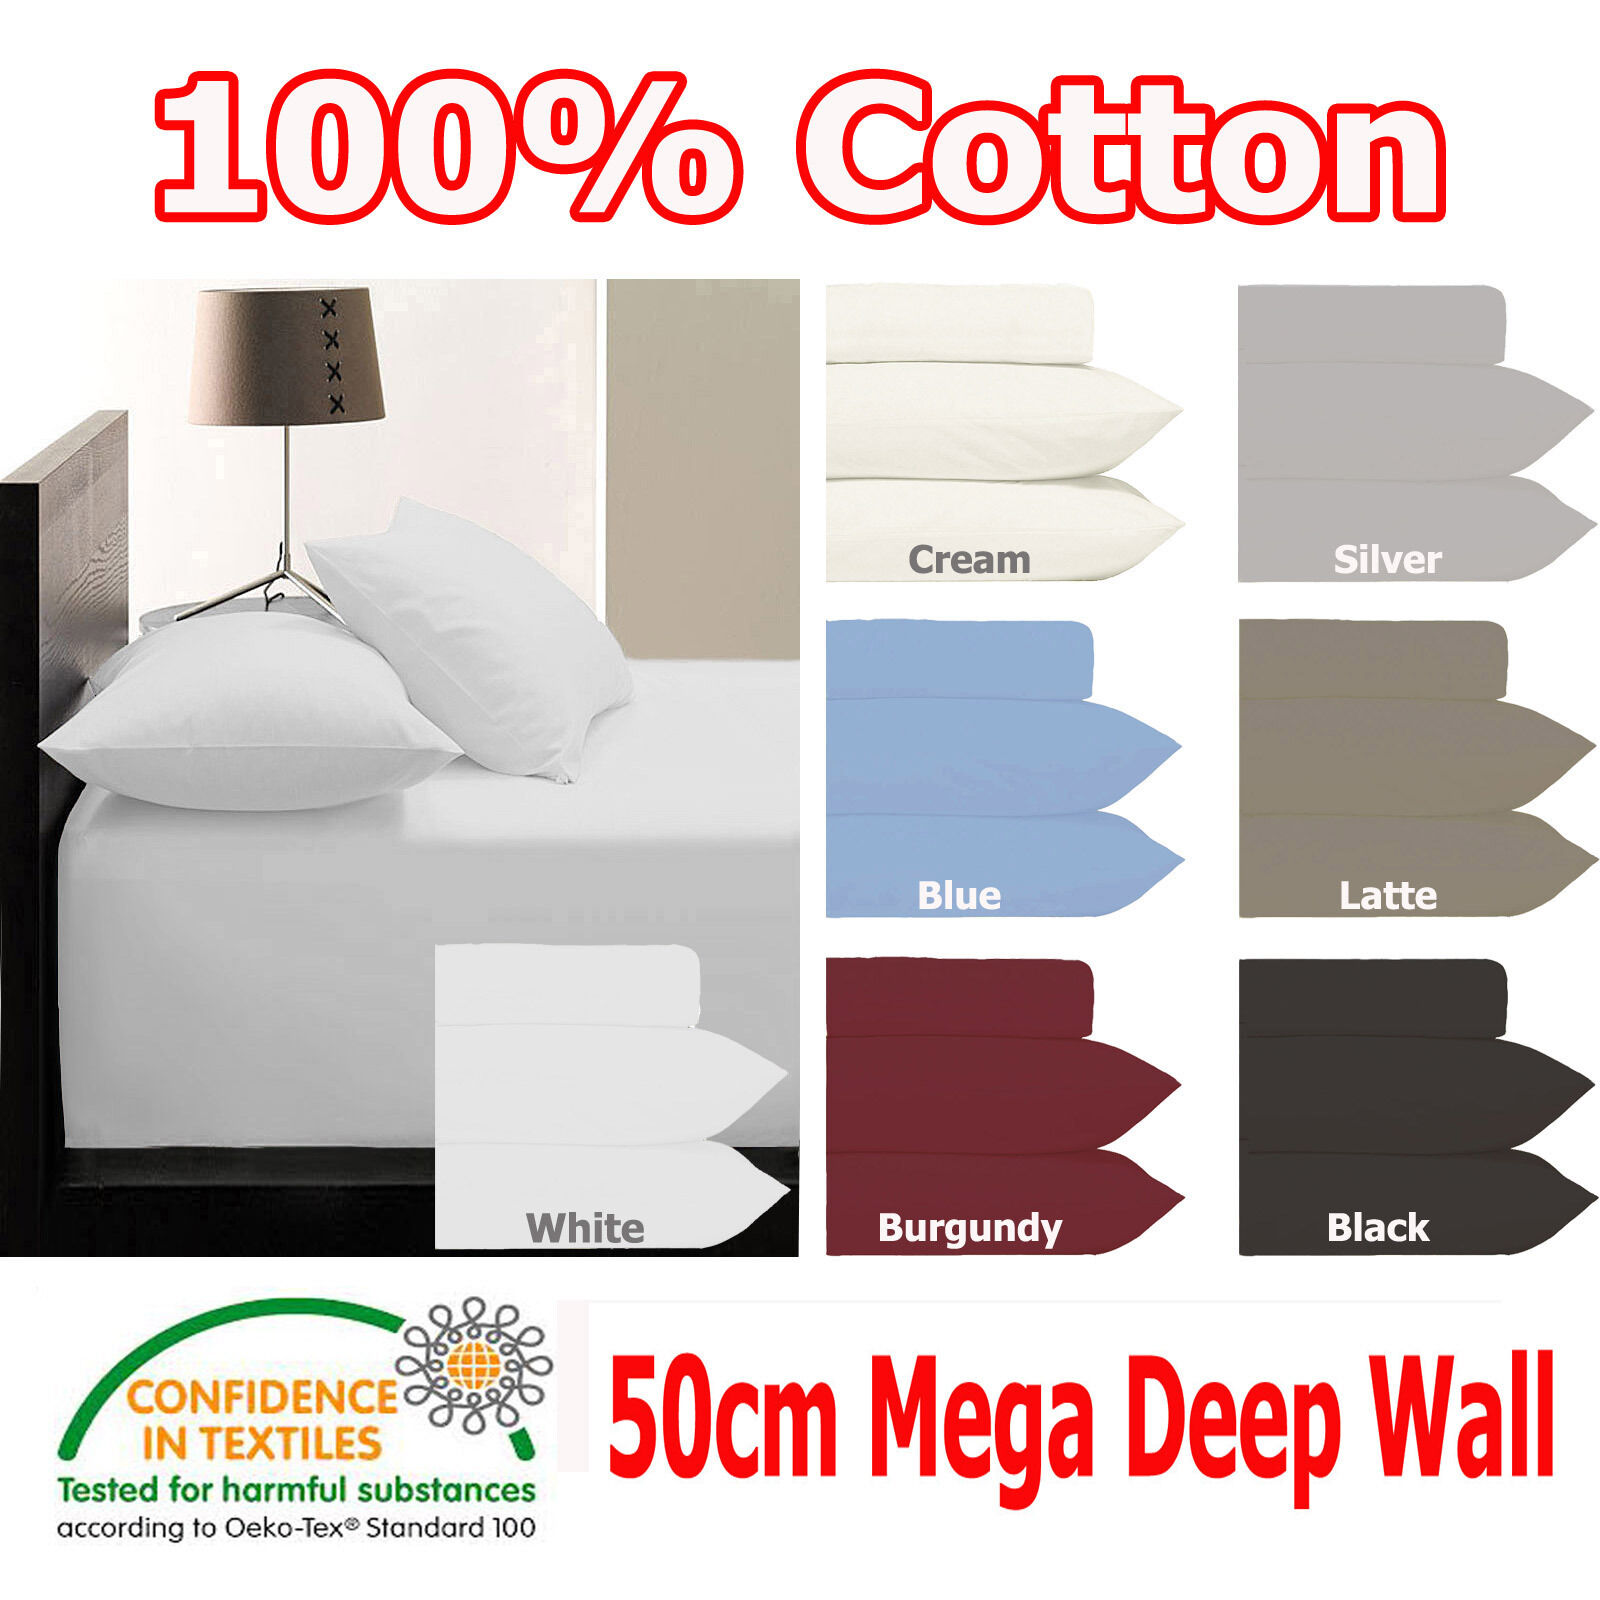 50cm Deep Wall - KING - 250TC Fitted Sheet & 2 Pillowcases Set 100% COTTON